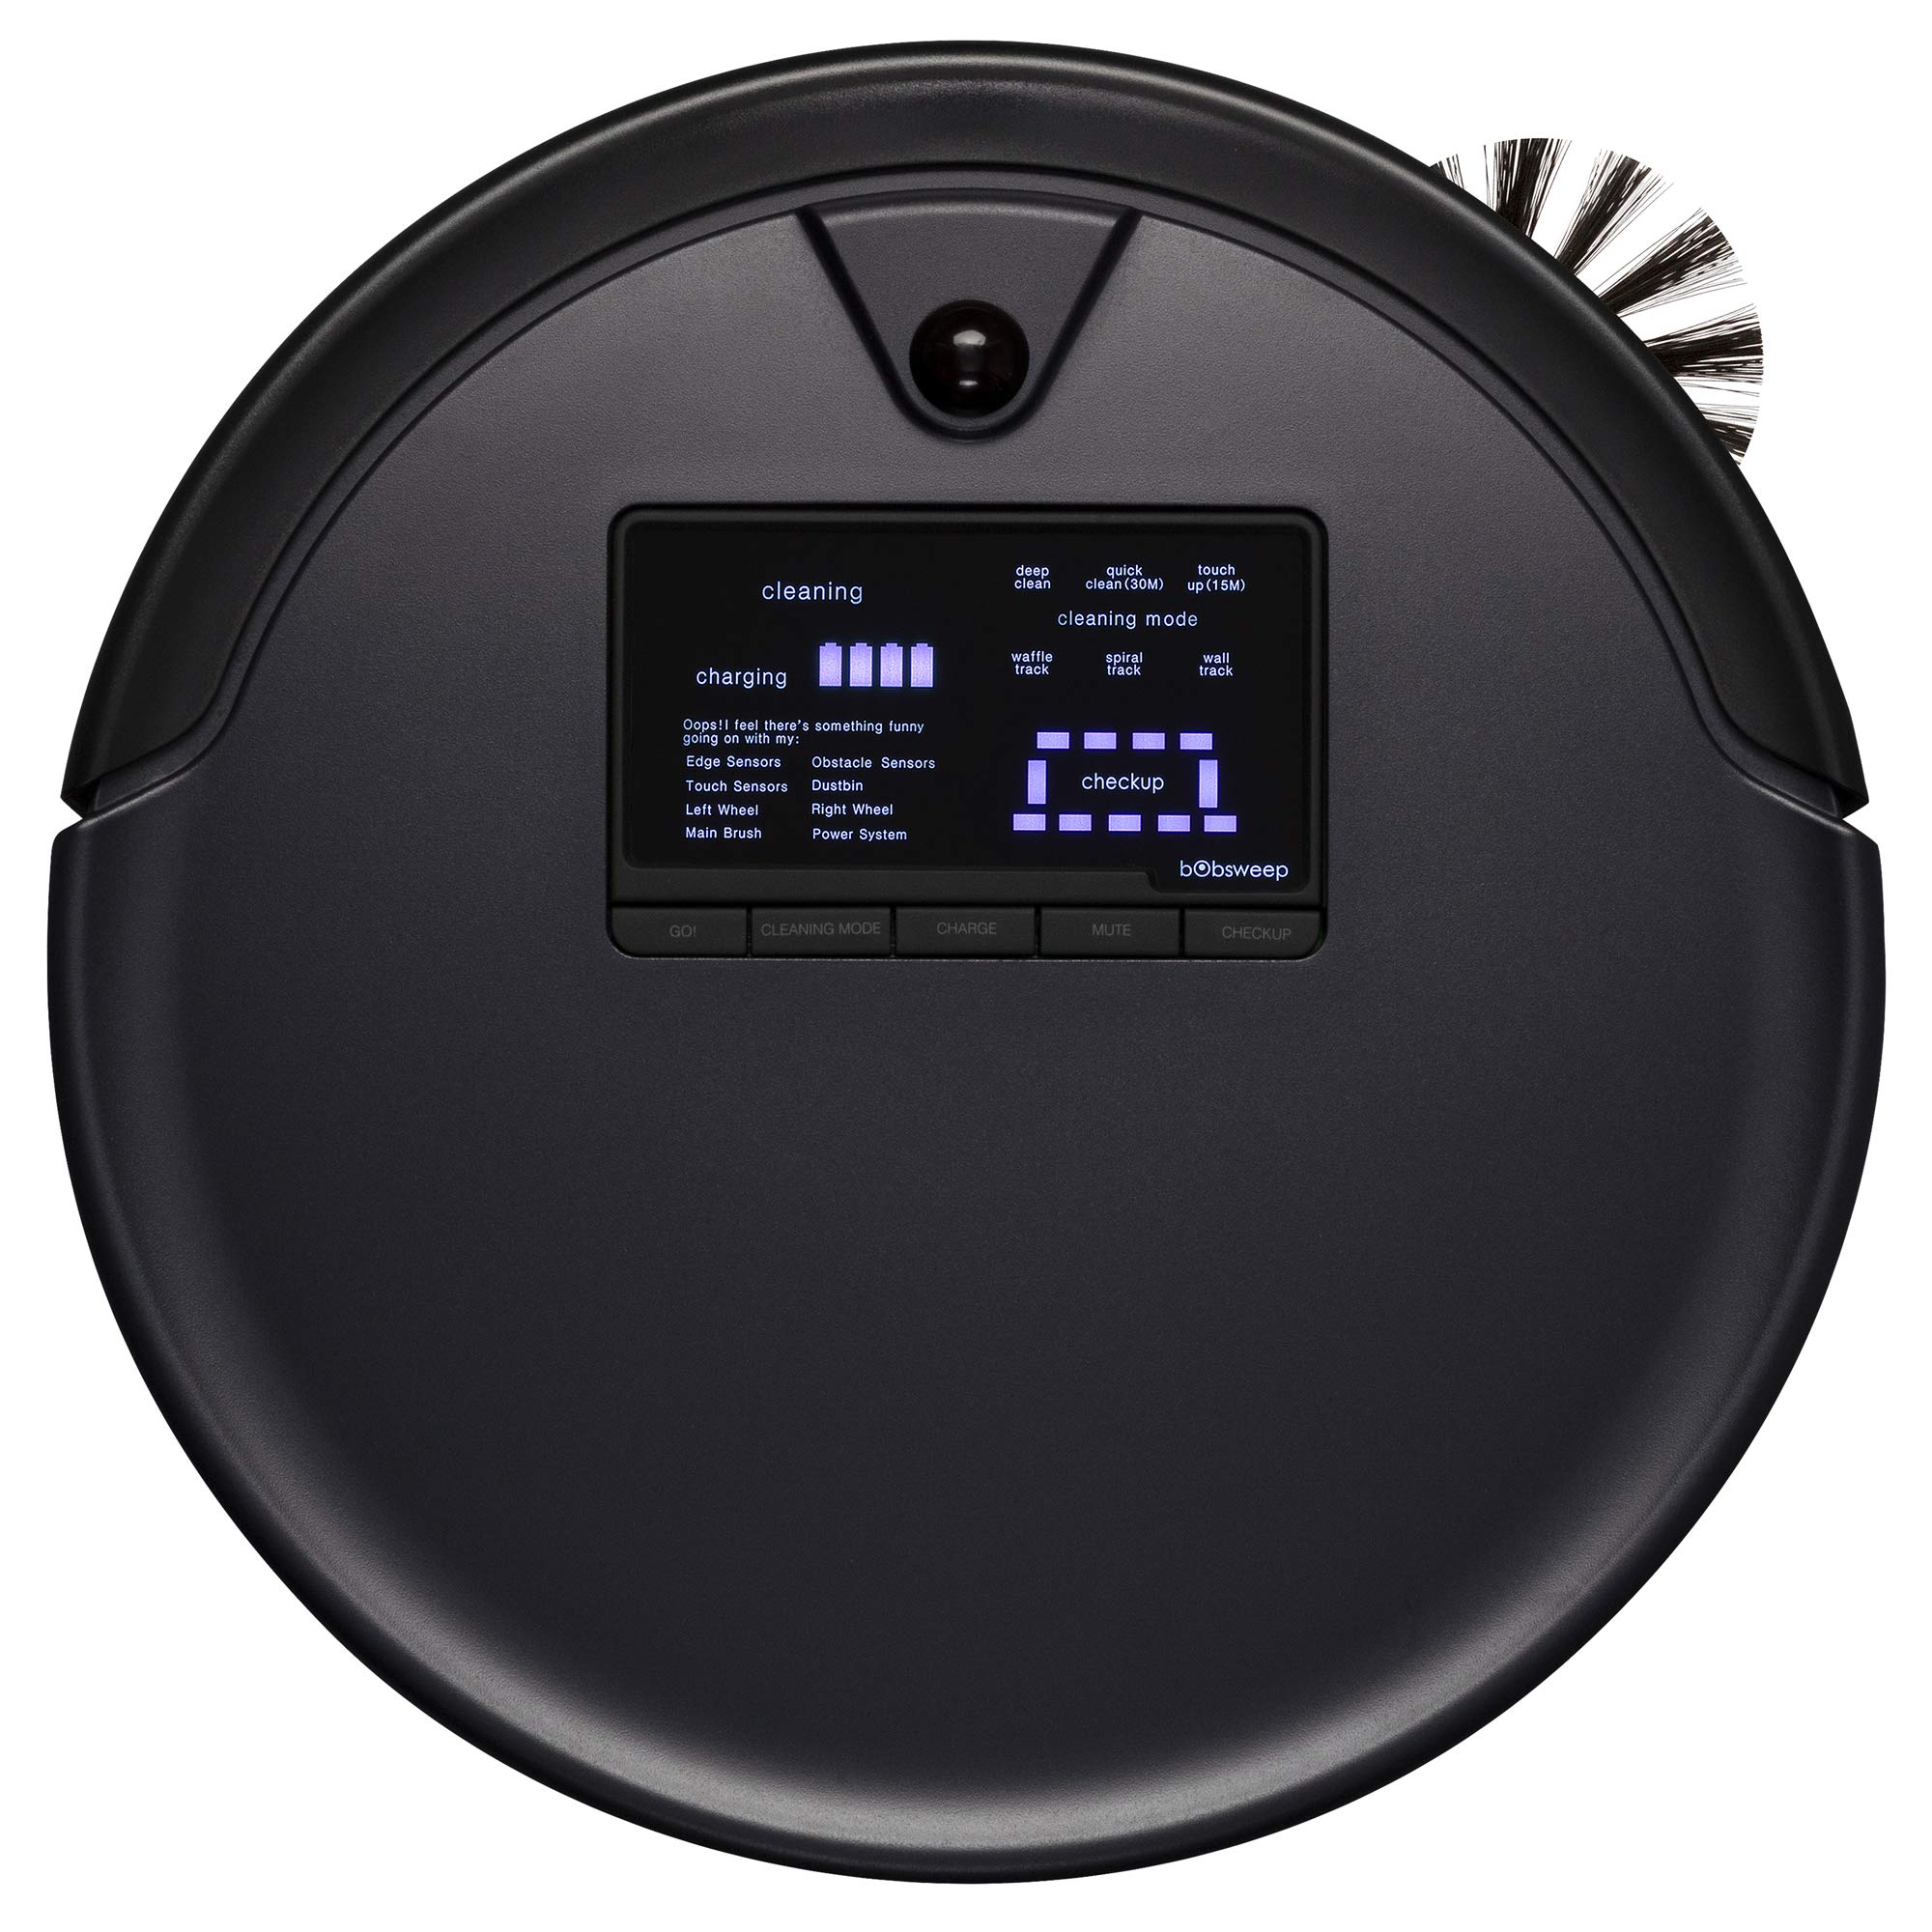 bObsweep Robotic Vacuum Cleaner Midnight